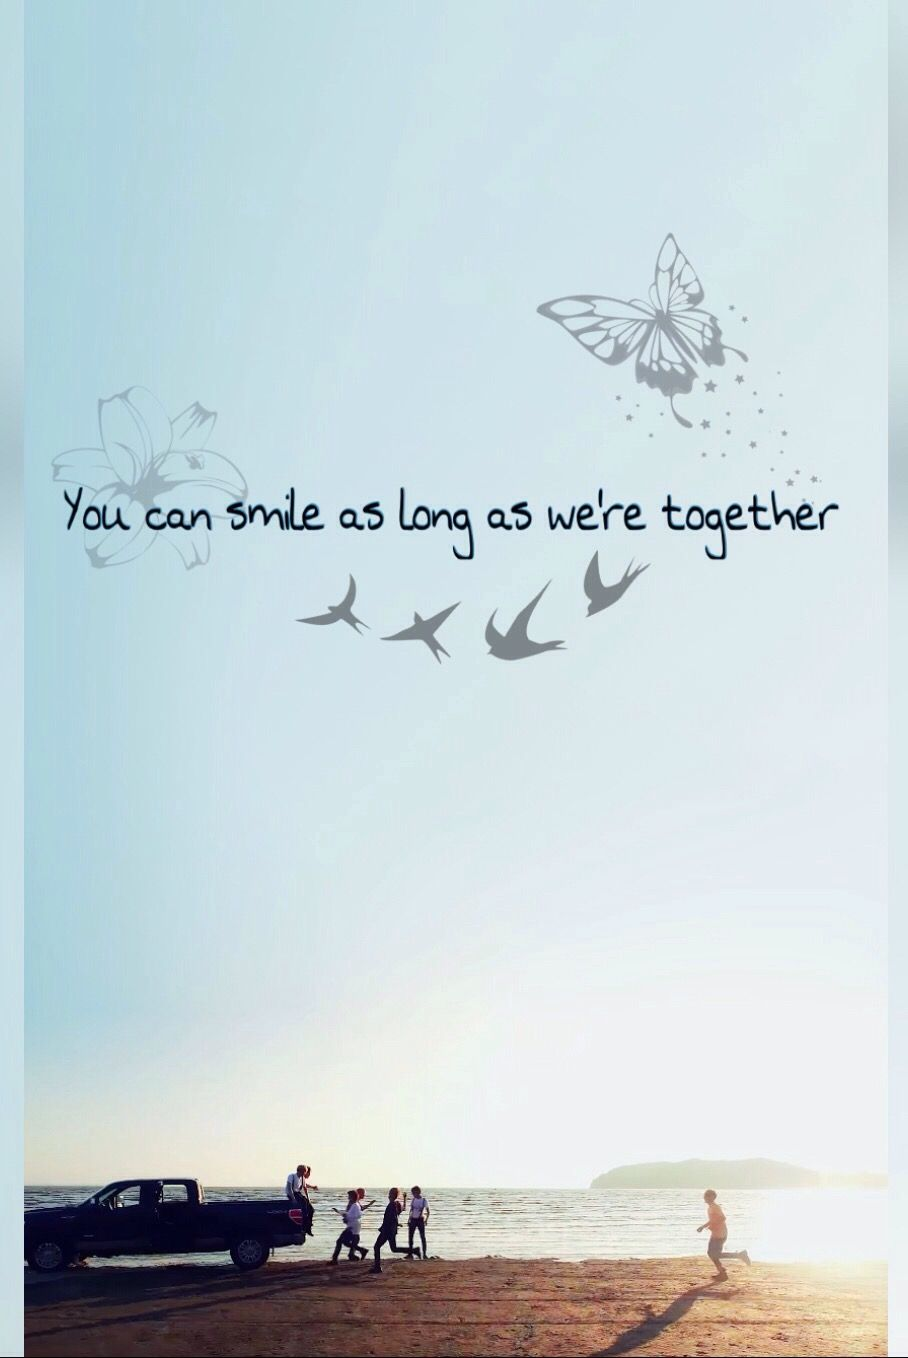 Kpop Quotes Wallpaper Bts Edit Quot You Can Smile As Long As We Re Together Quot Bts